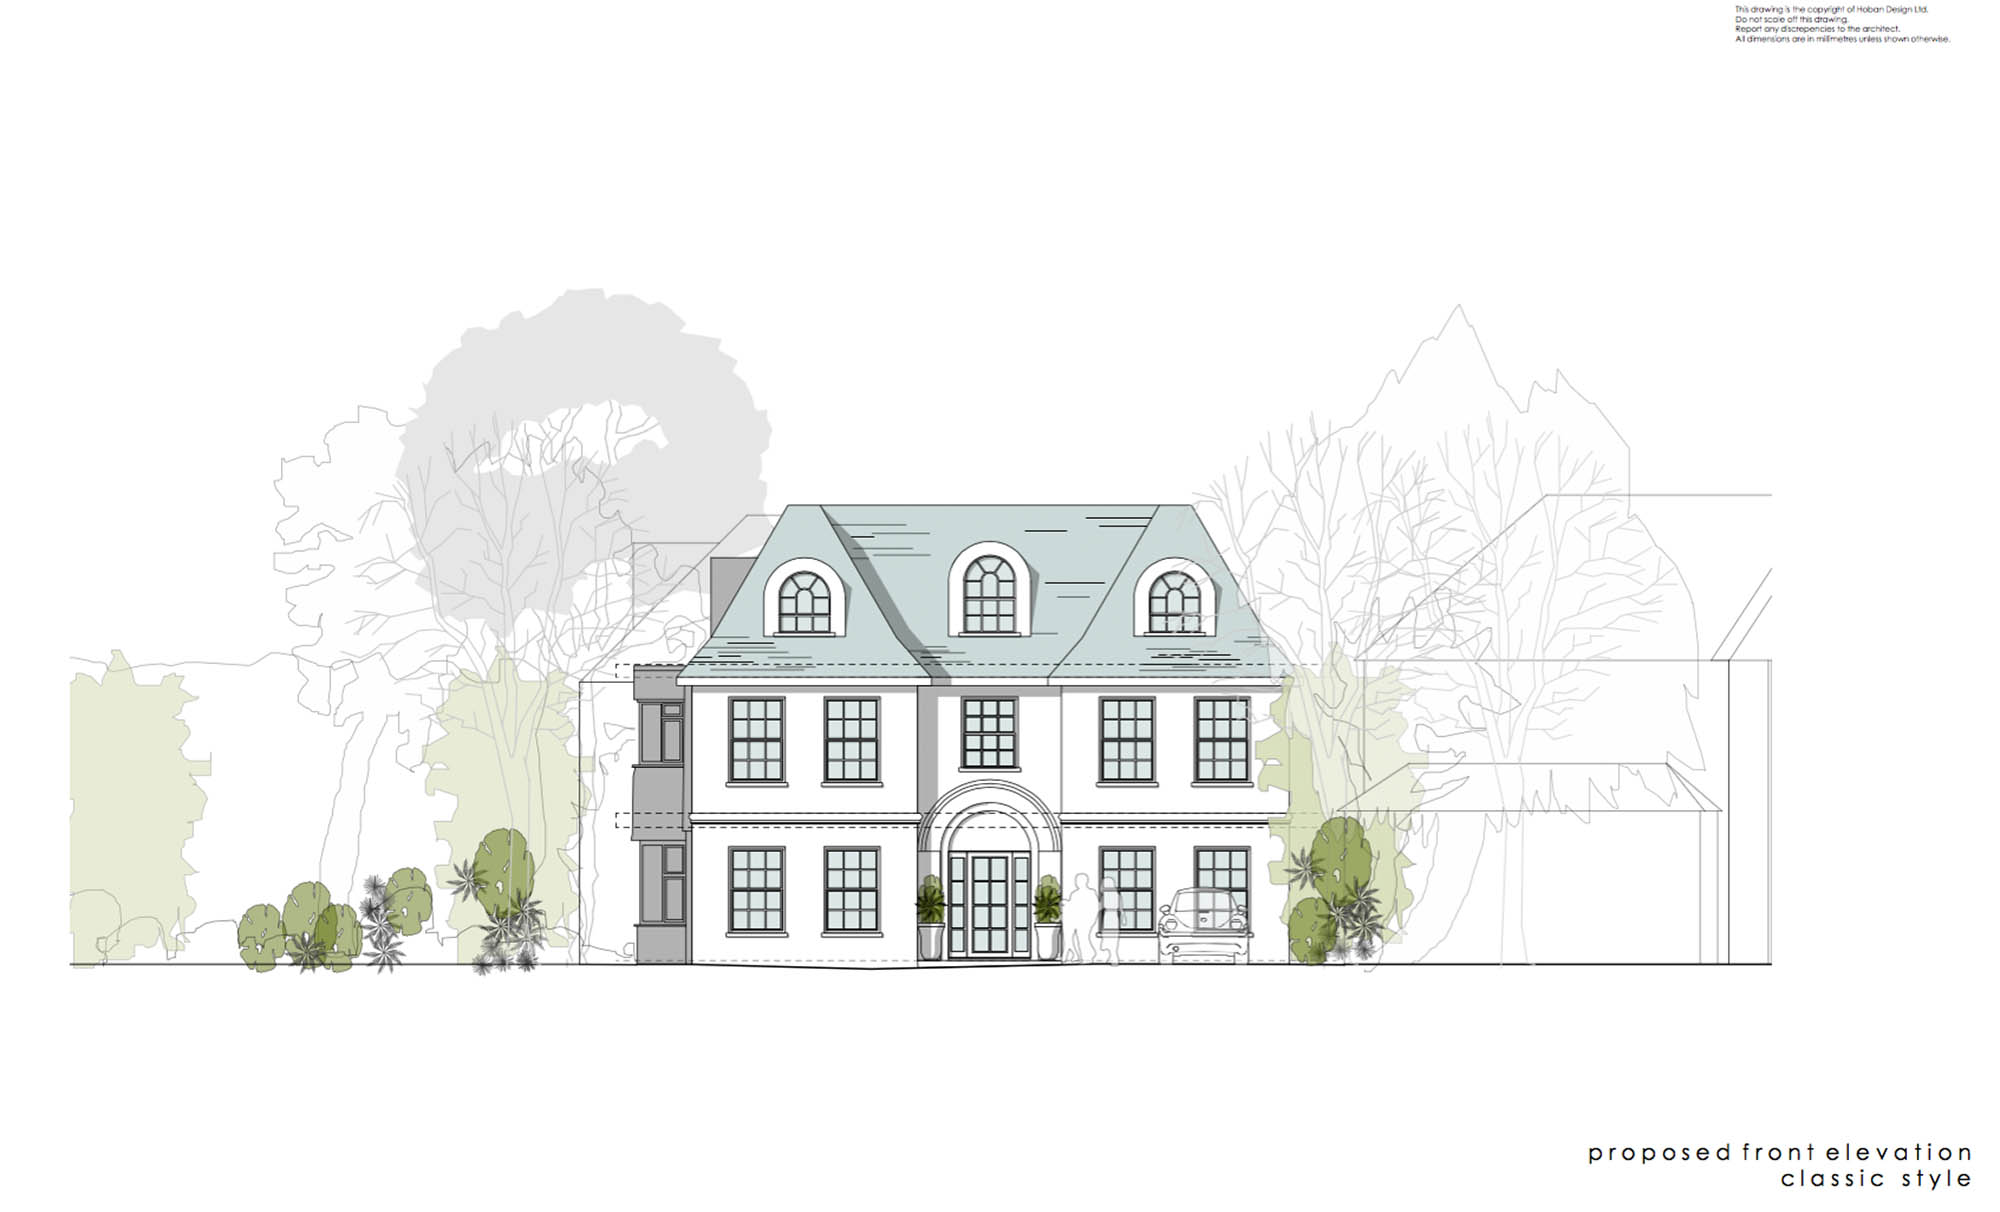 House front elevation plan for Kingston renovation project